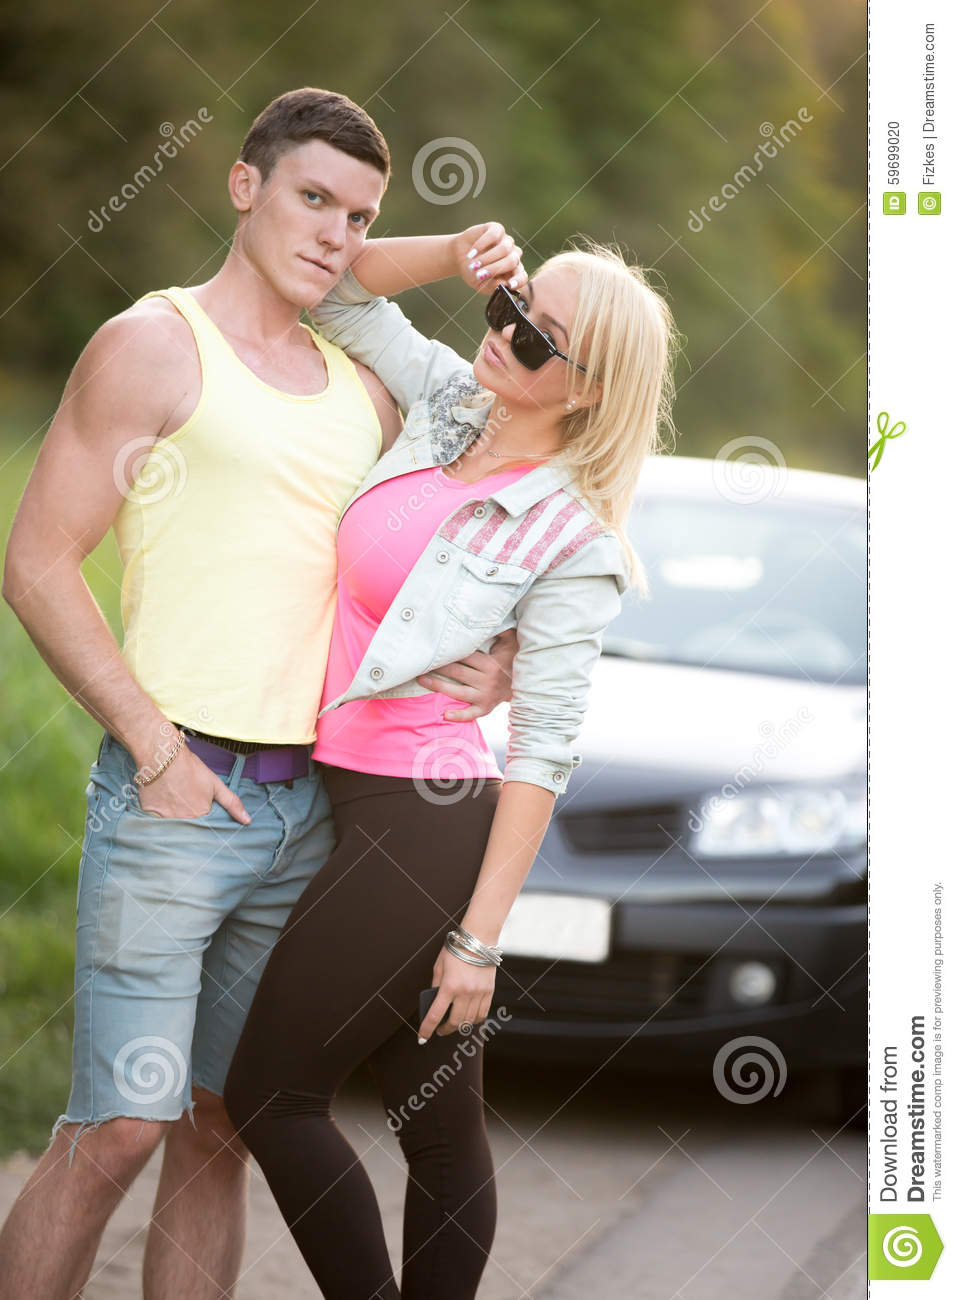 Couple Posing In Front Of Car Stock Photo Image Of Girlfriend Couple 59699020